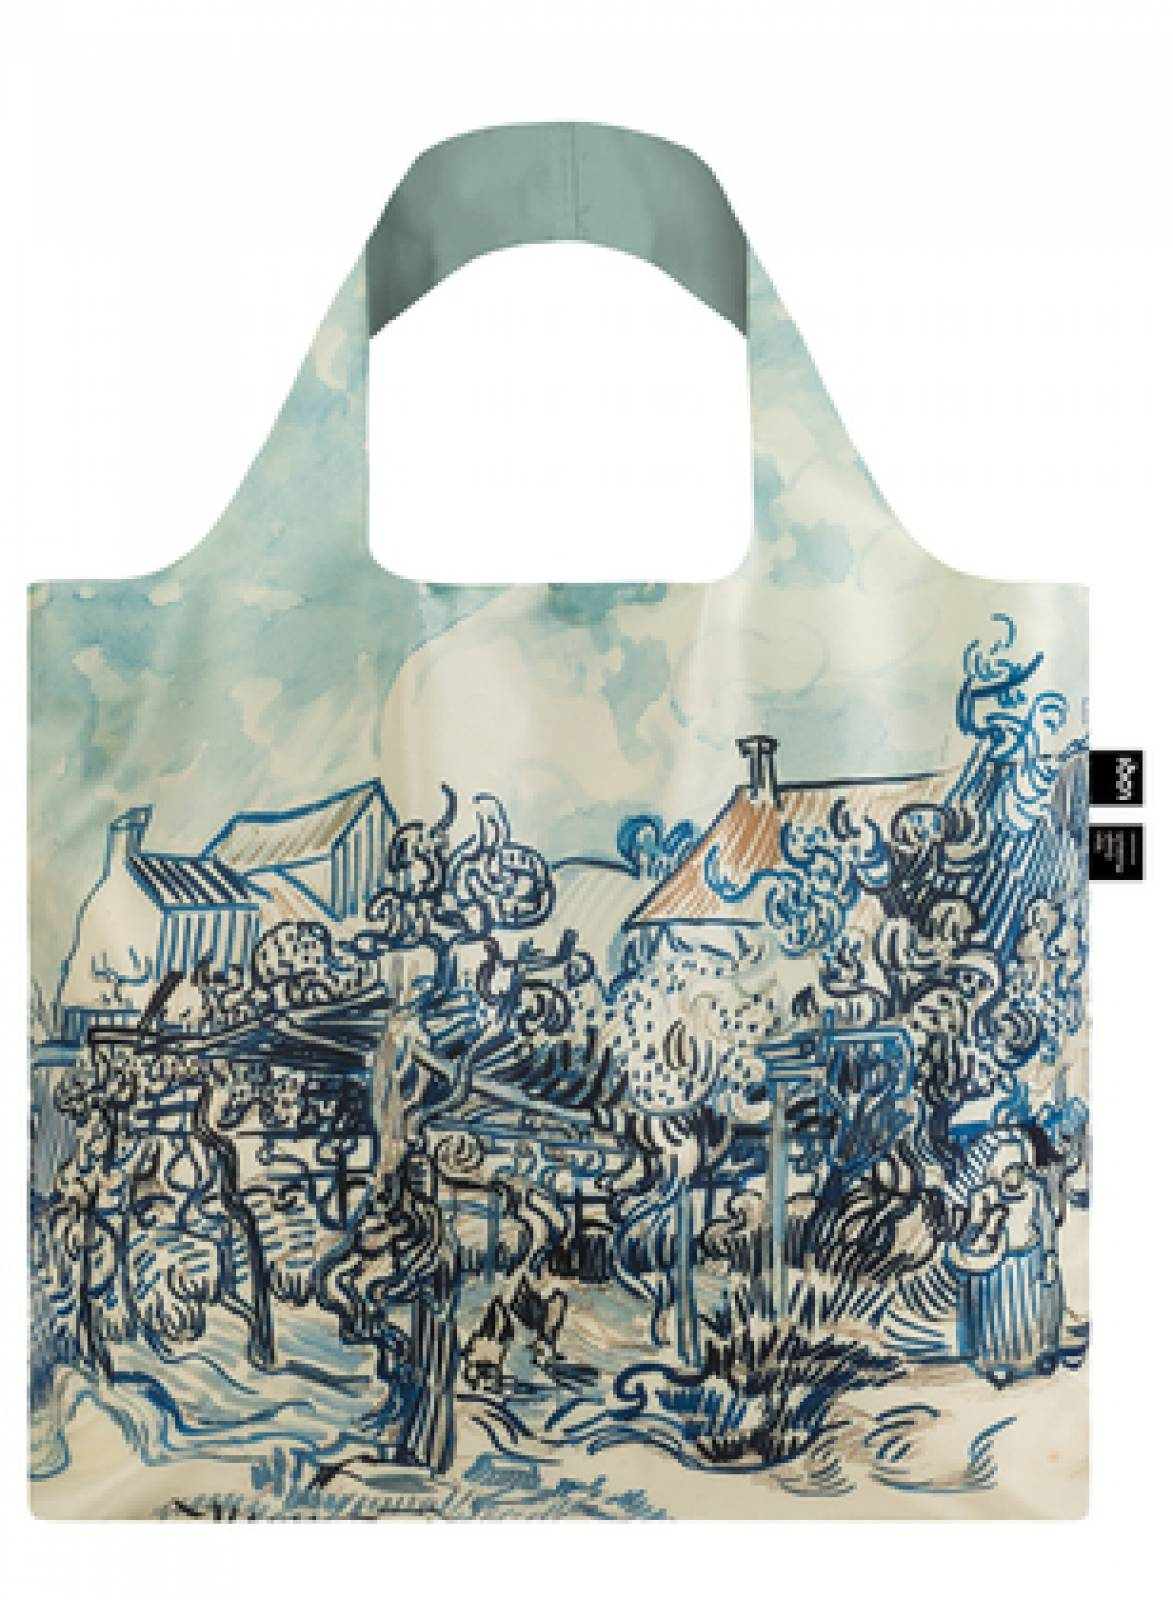 Old Vineyard and Landscape - Reusable Tote Bag With Pouch thumbnails